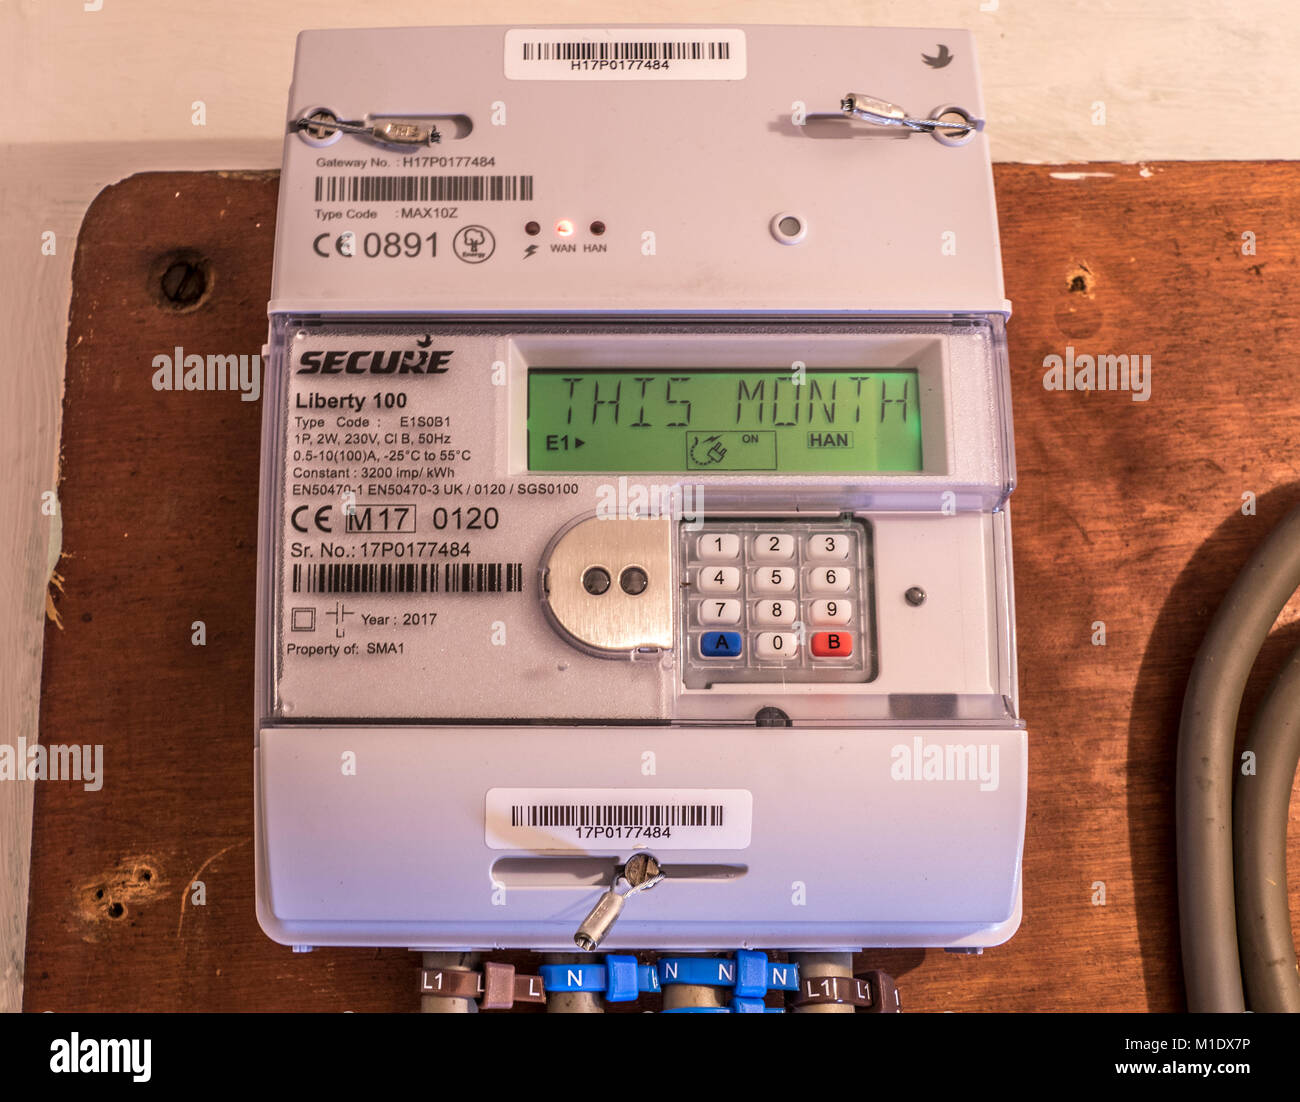 Secure Liberty 100 smart electricity meter, measuring consumption and relaying 'This Month' information - Stock Image